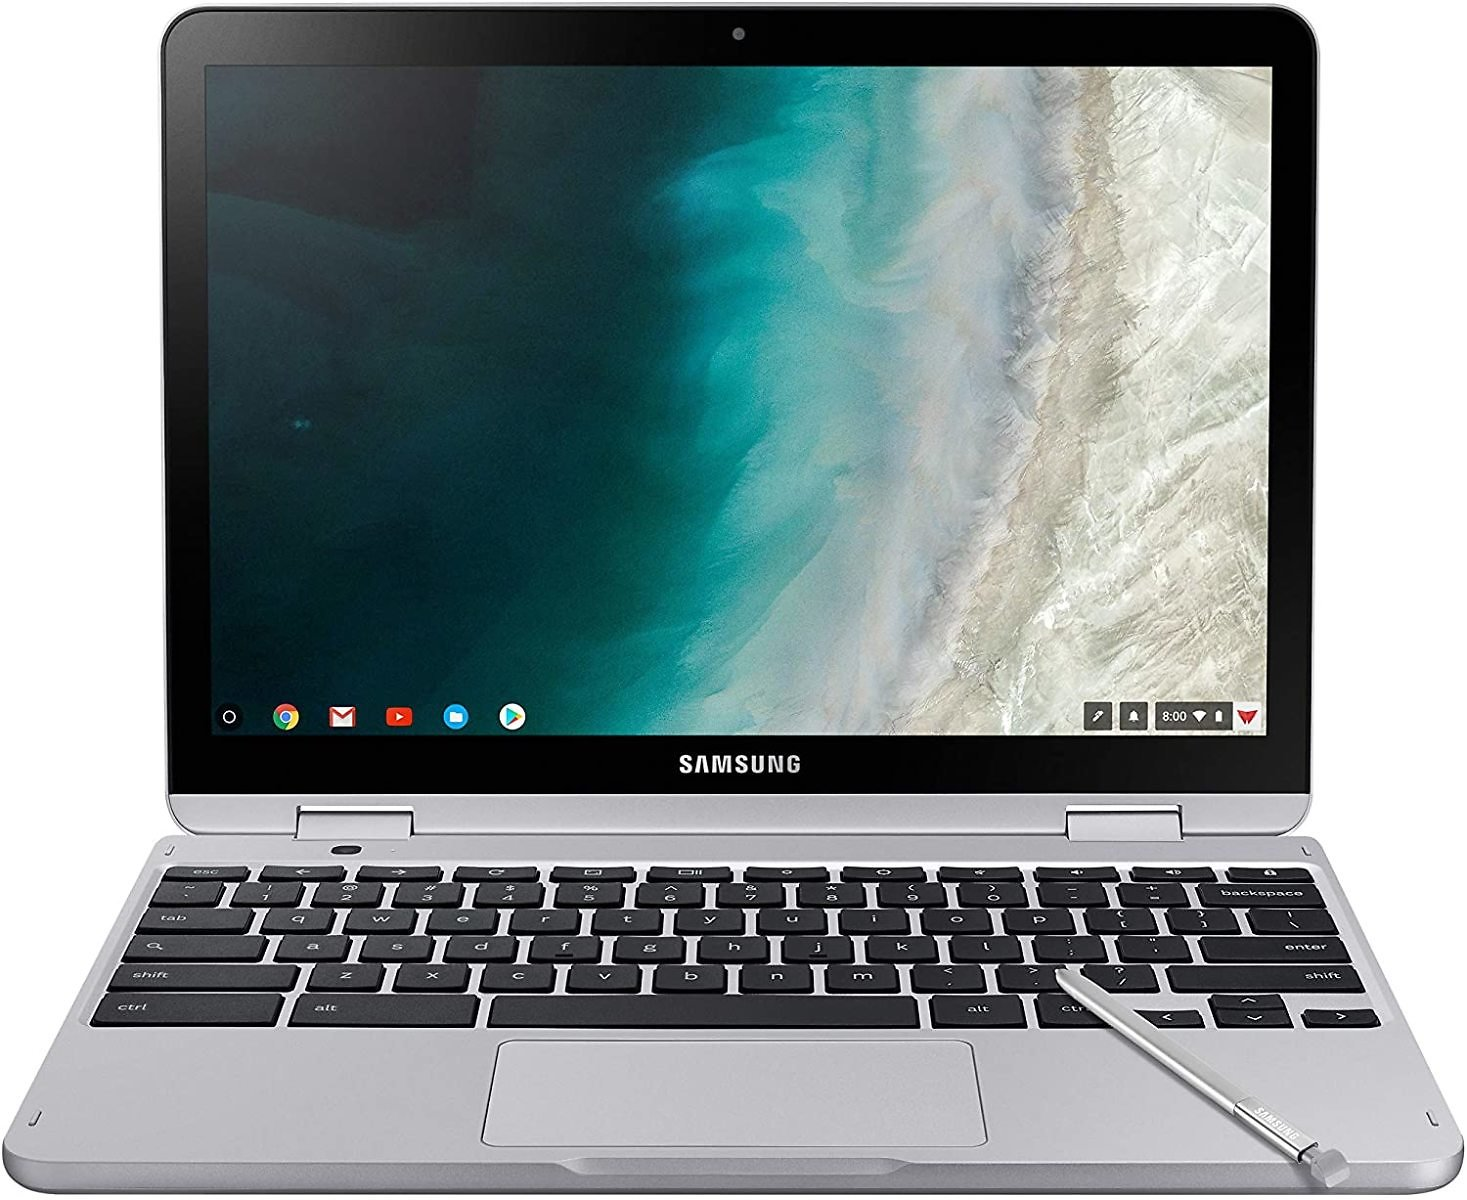 Samsung Chromebook Plus V2 2-in-1 Laptop- 4GB RAM, 64GB EMMC, 13MP Camera, Chrome OS, 12.2